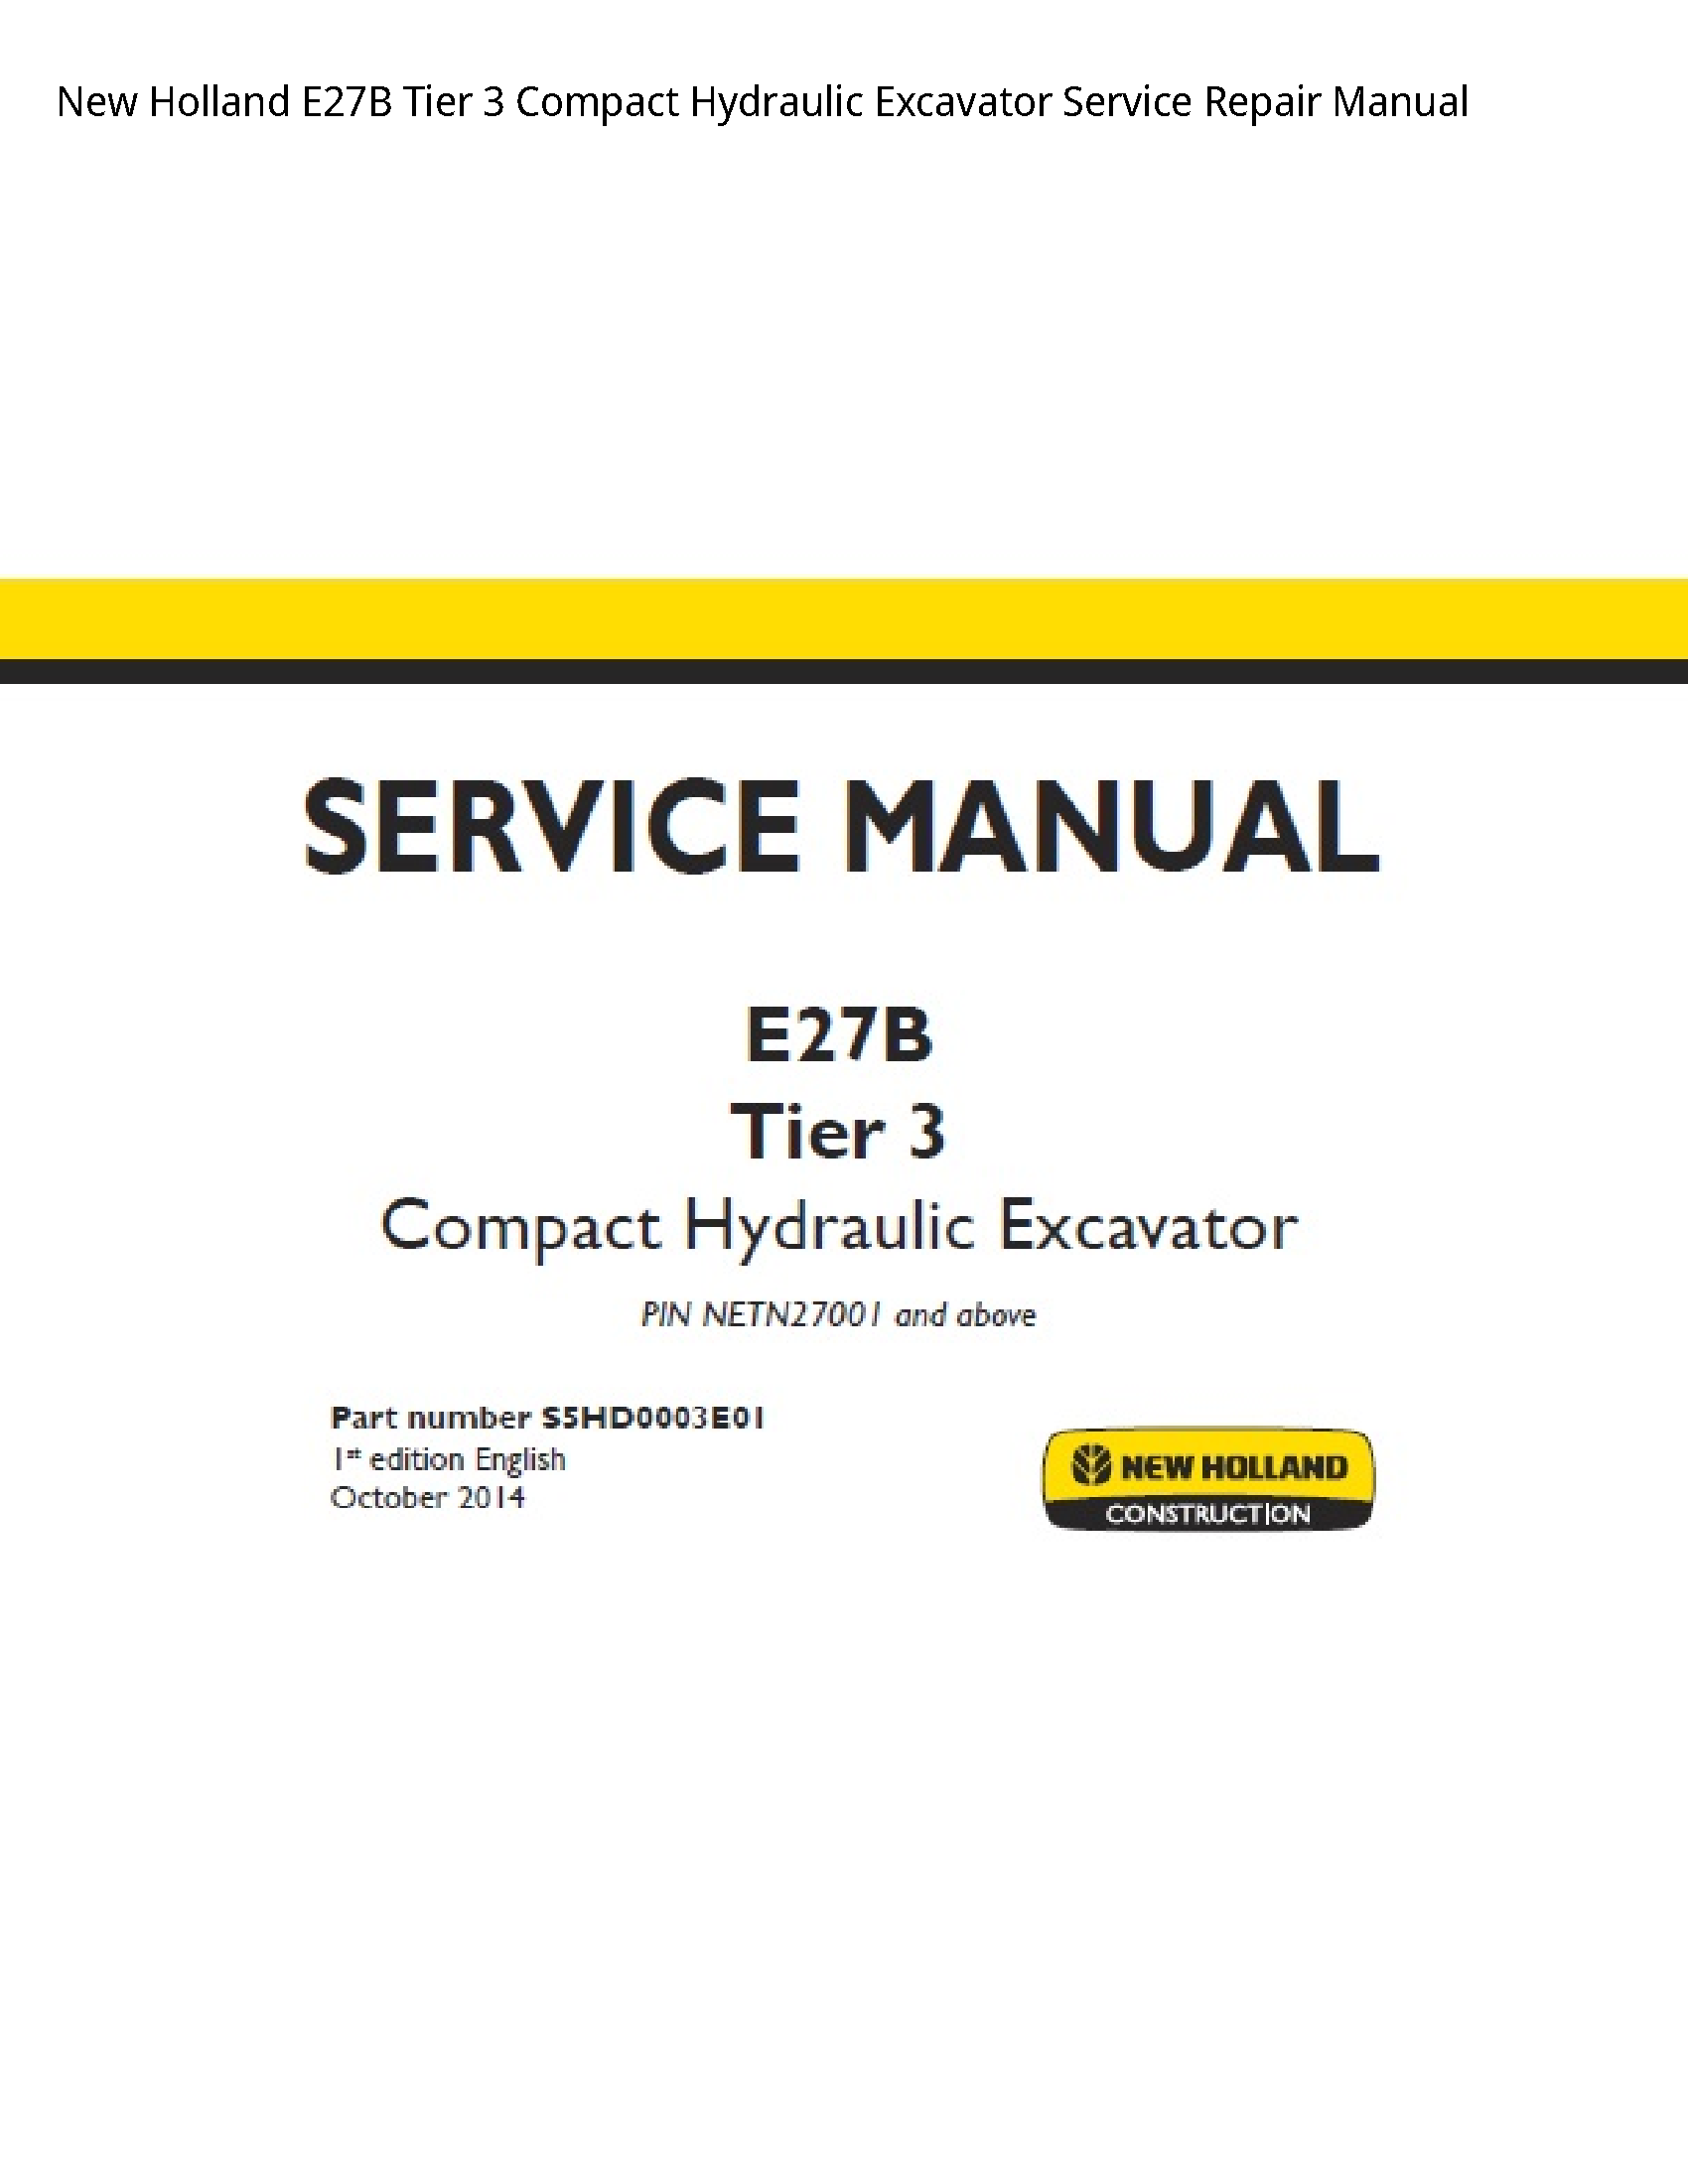 New Holland E27B Tier Compact Hydraulic Excavator manual